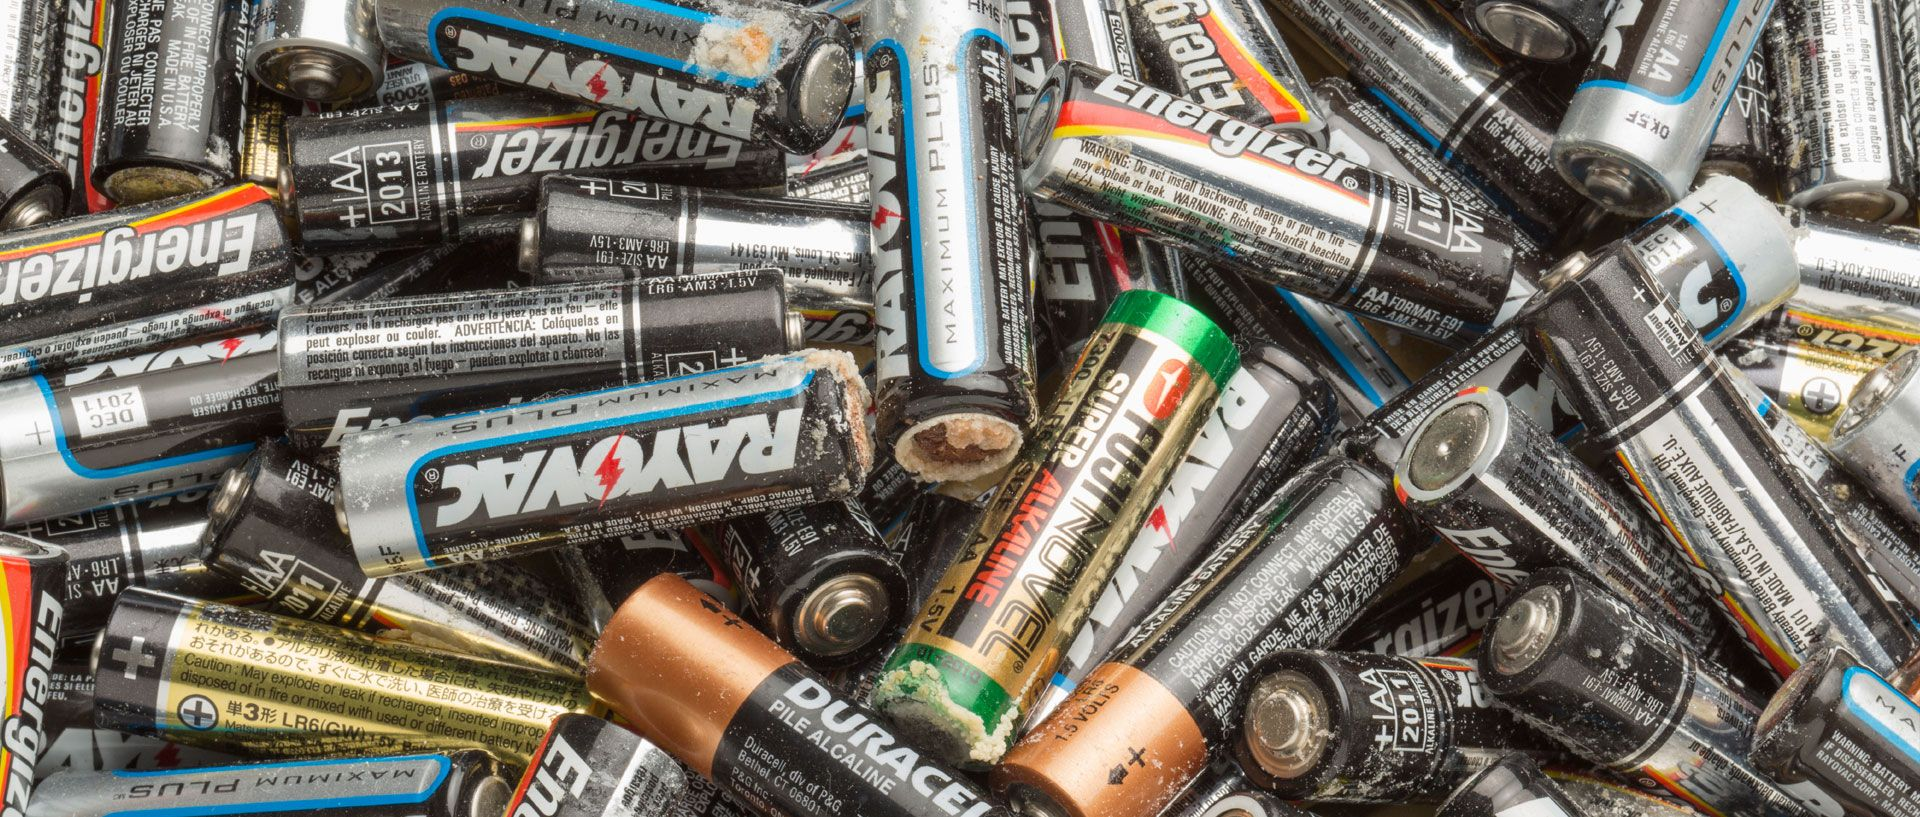 Why Do Batteries Leak Batteries Household Hacks Diy Cleaning Products